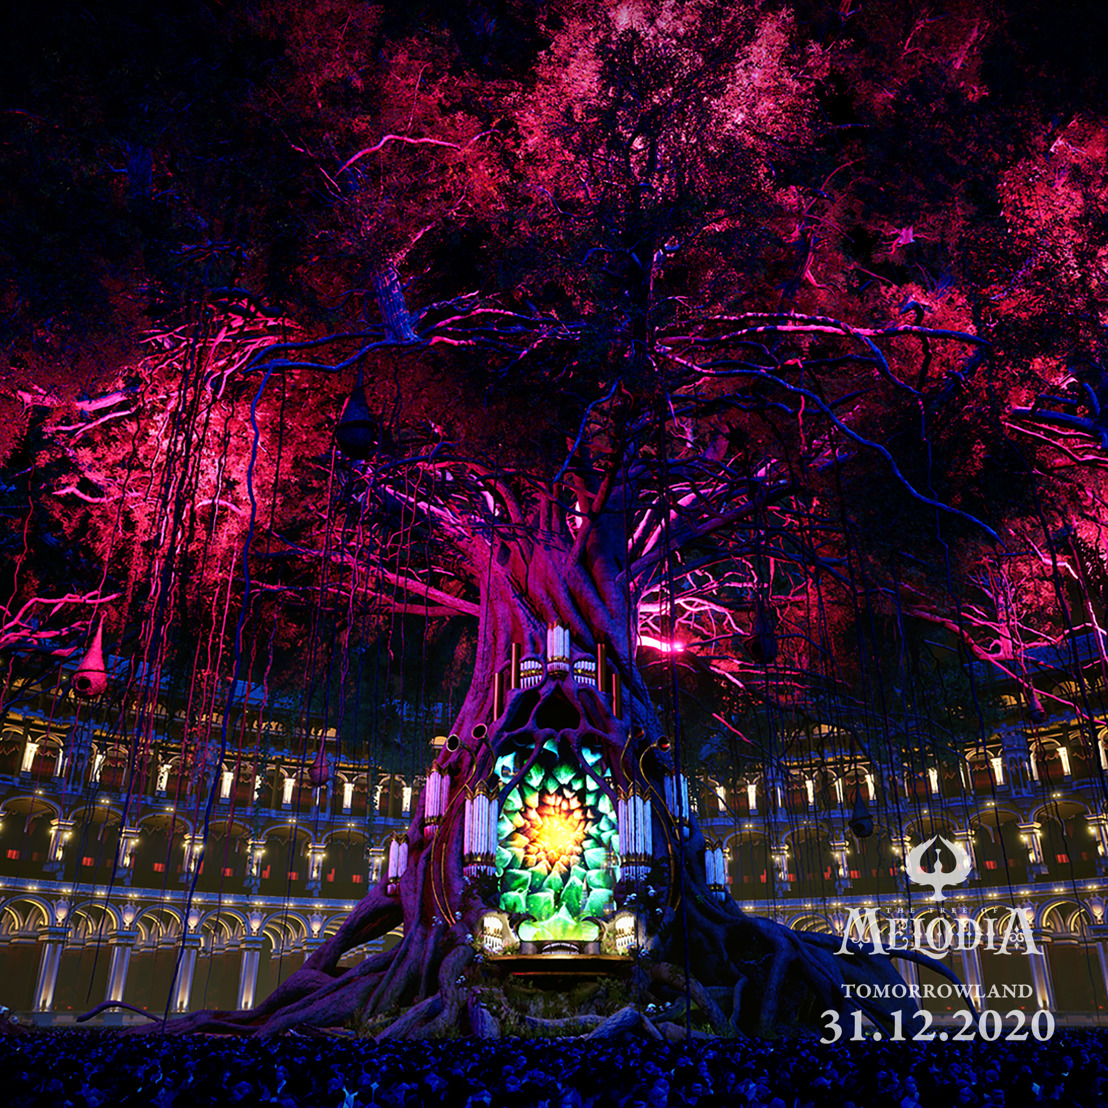 Tomorrowland is giving first sneak previews of the 4 digital stages at Tomorrowland 31.12.2020